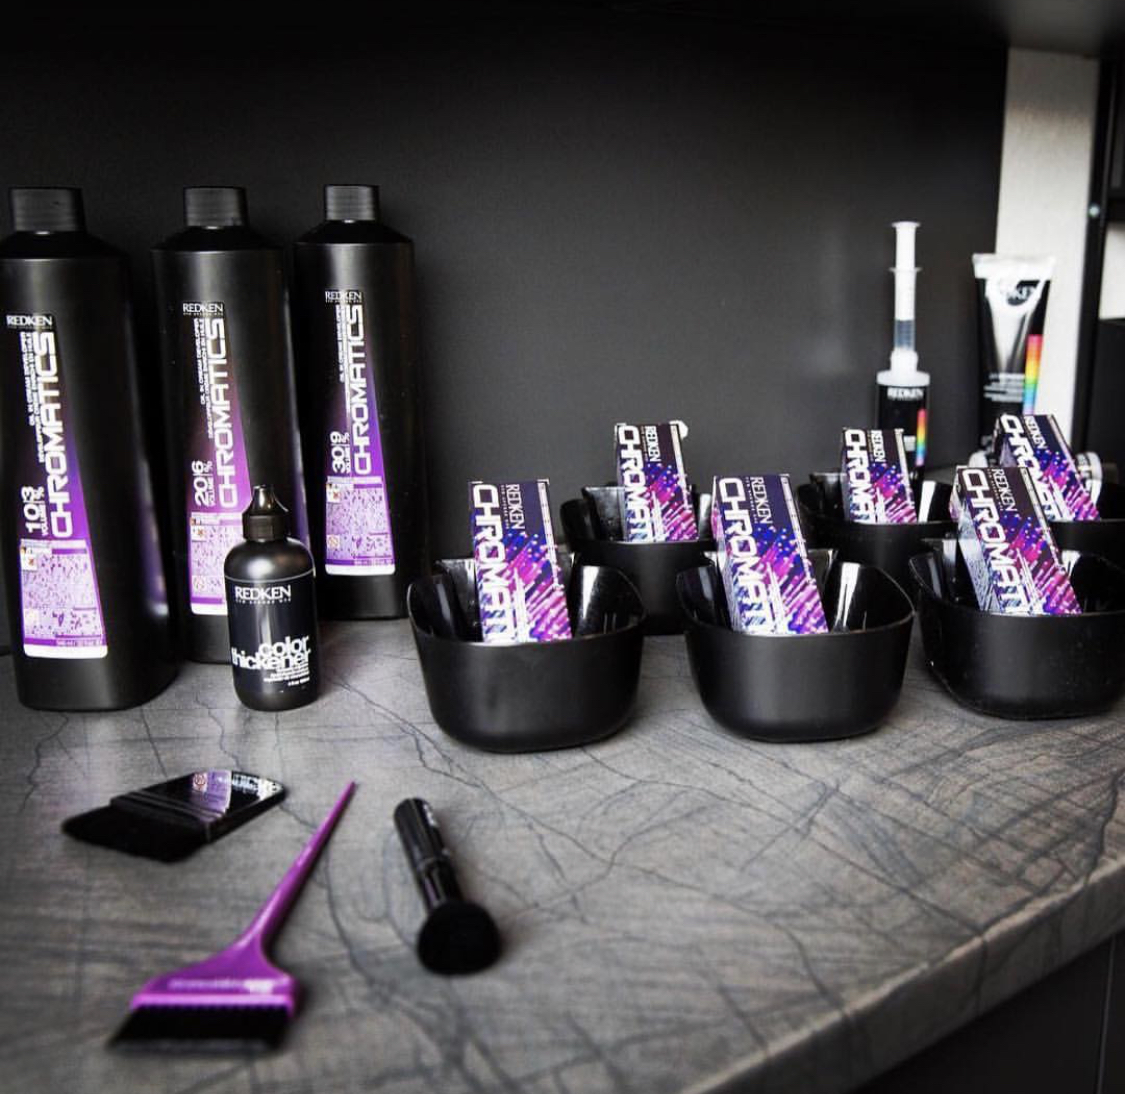 CHROMATICS COLOR - Zero Ammonia color line by Redken.100% grey coverage, formulated for long lasting, multidimensional color without the odor or discomfort sometimes caused by traditional color lines.